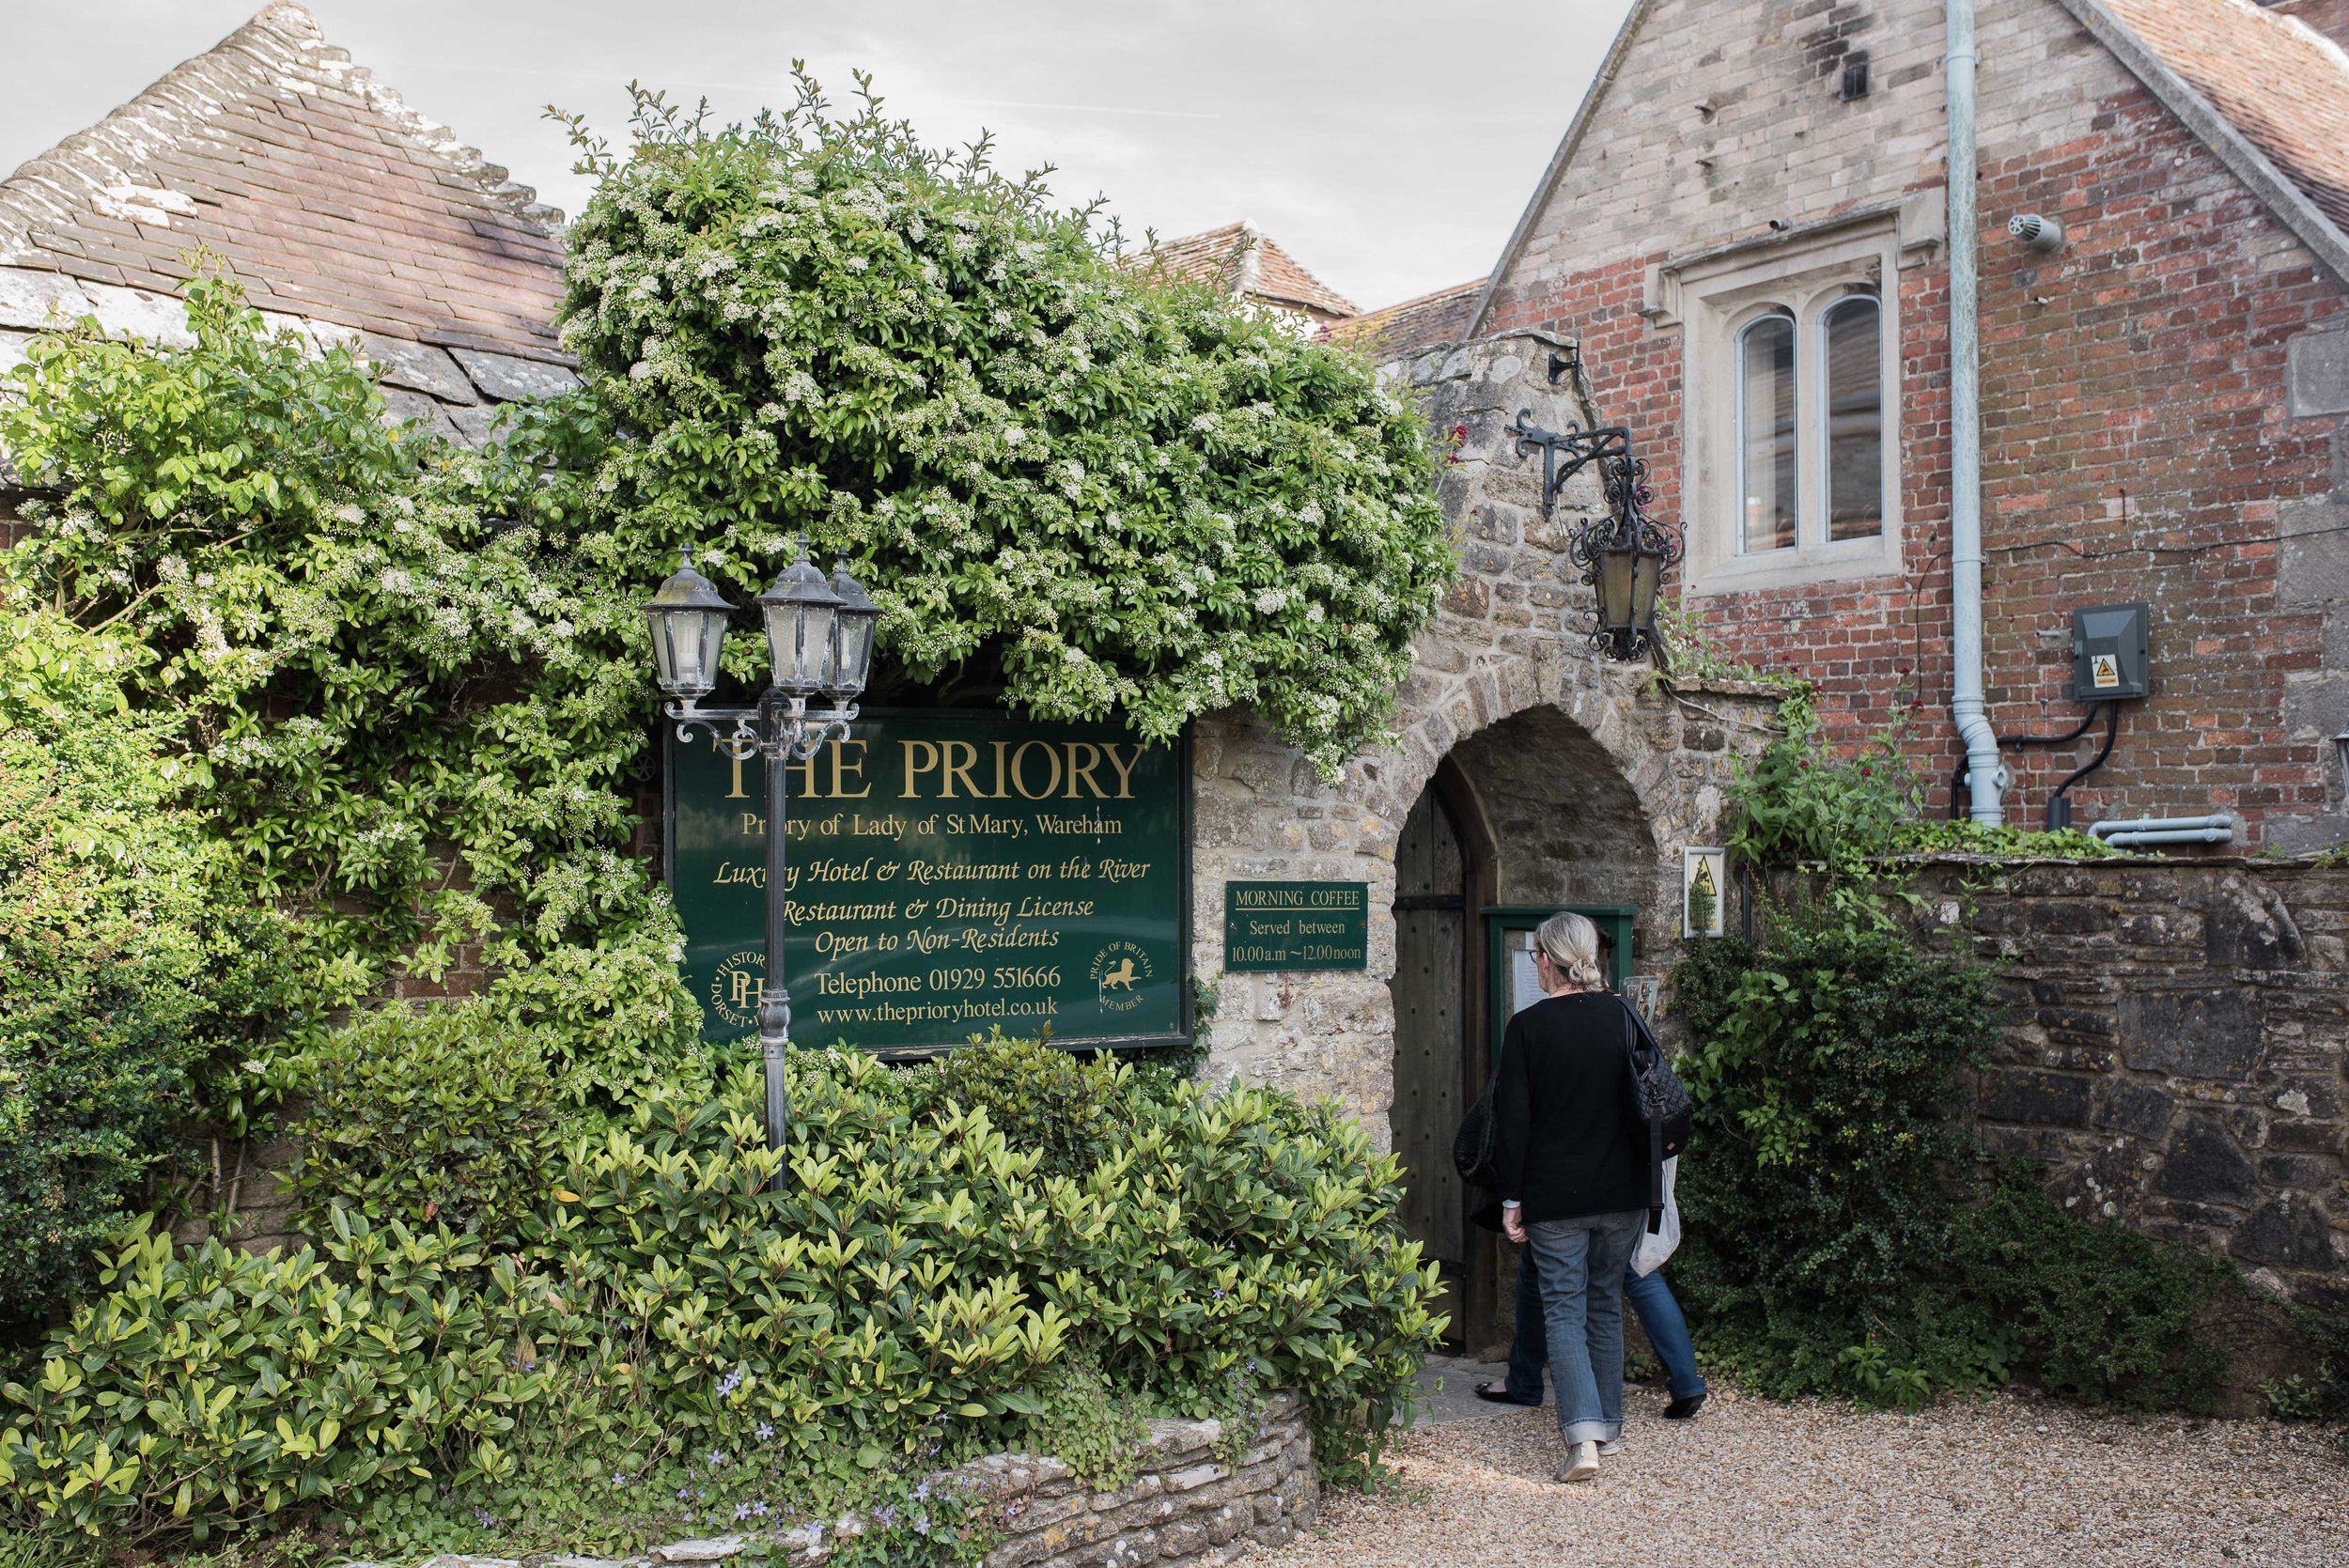 Our long day of touring came to an end as we checked into  The Priory Hotel  in Wareham, England.